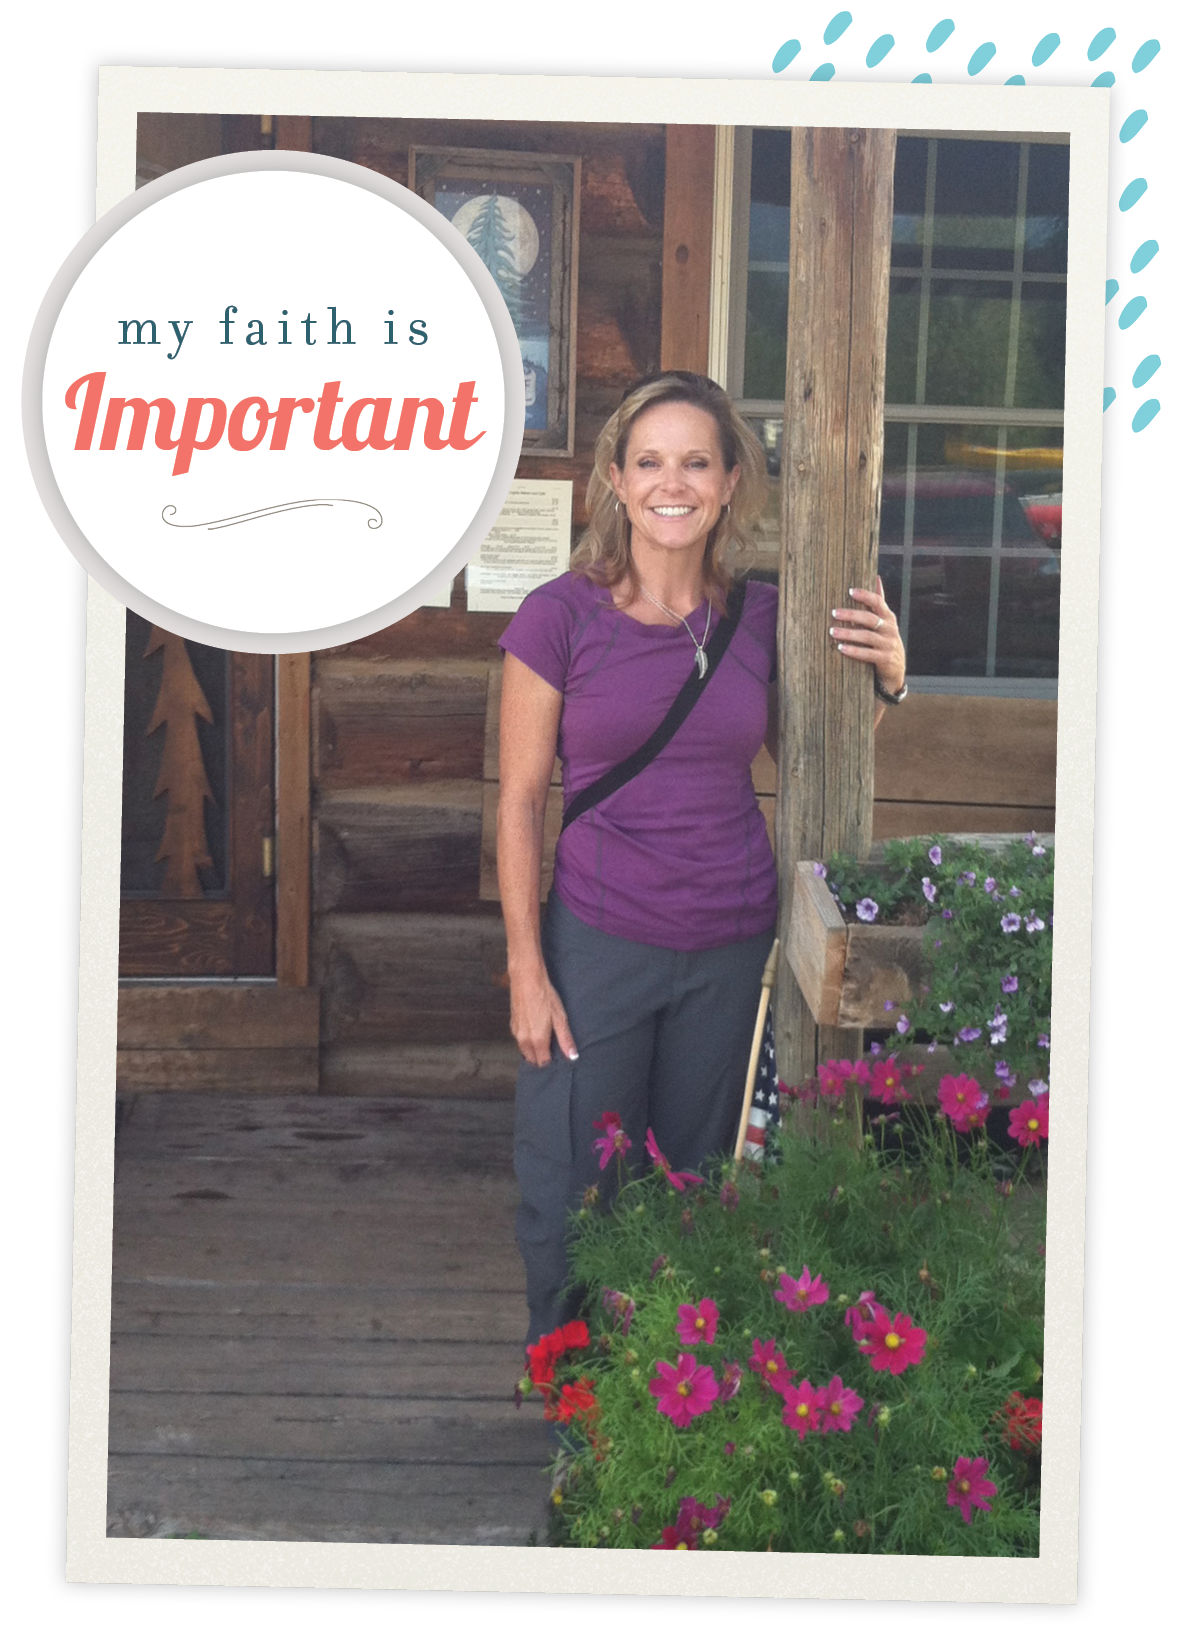 faith and spirituality are important foundations